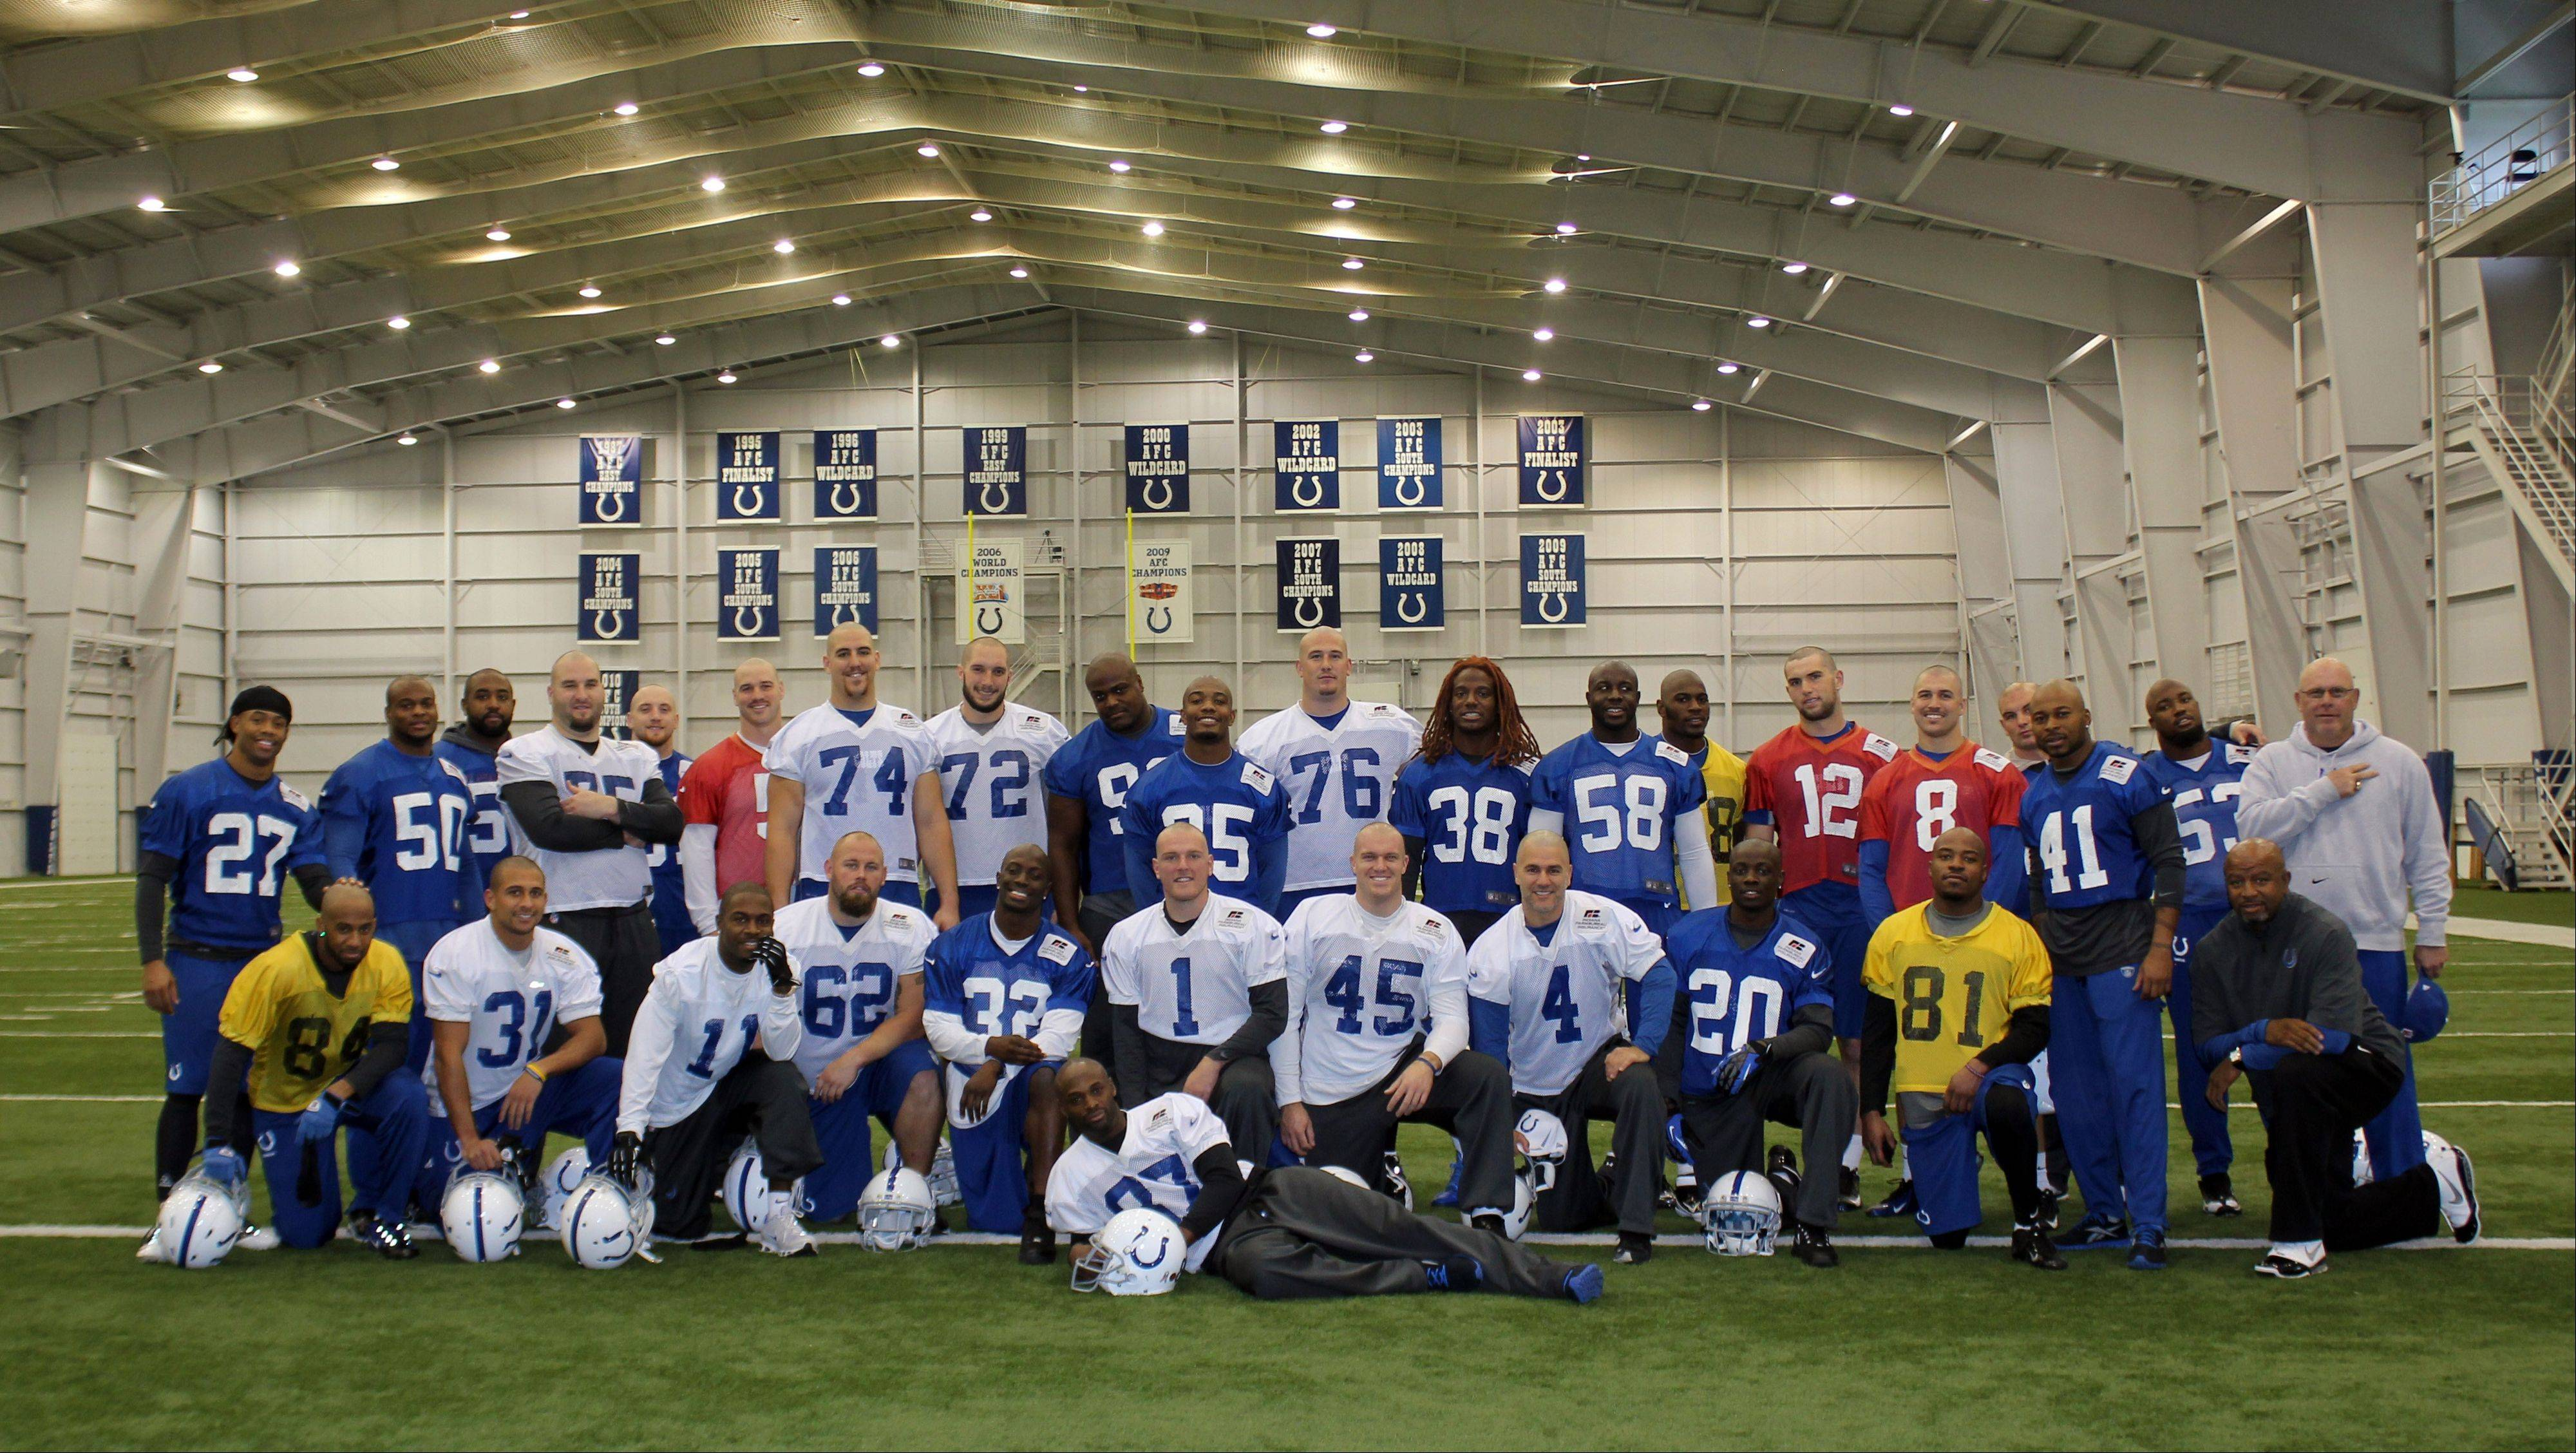 The Colts are going to great lengths to support their ailing coach Chuck Pagano. In a show of support, many players shaved their heads after Tuesday�s practice. Pagano lost his hair while undergoing treatment for leukemia.